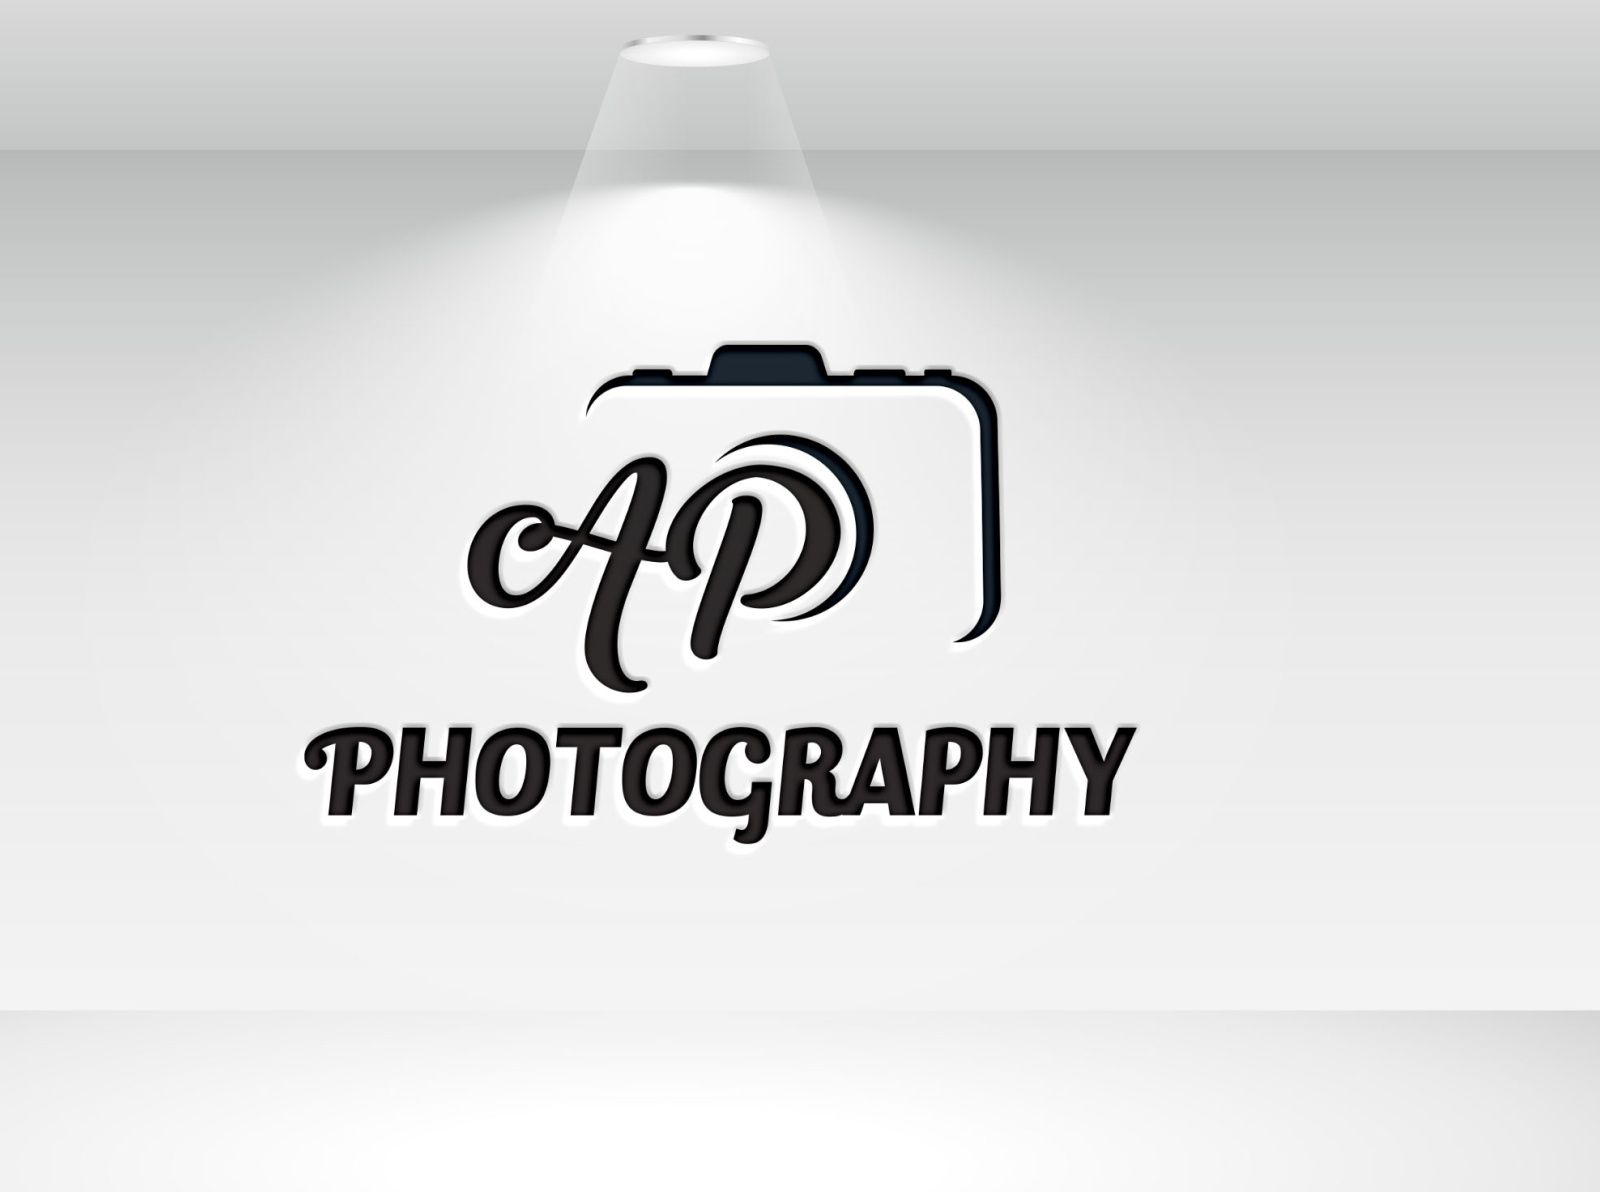 Ap Photography Photography Logos Photography Name Logo Camera Logos Design